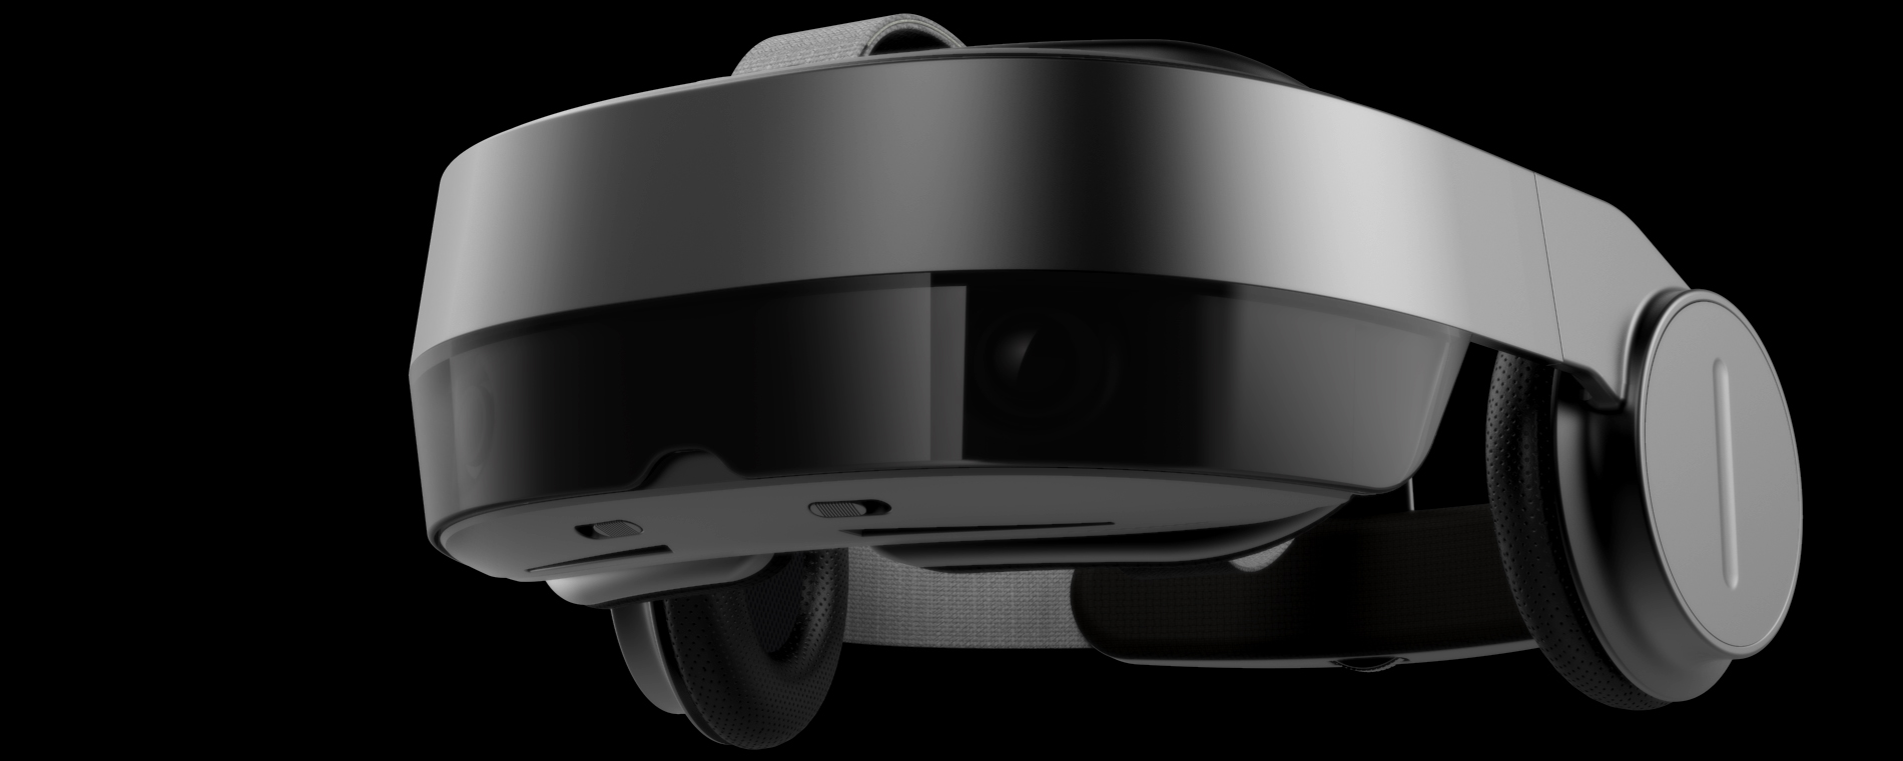 Virtual reality goggles industrial design rendering